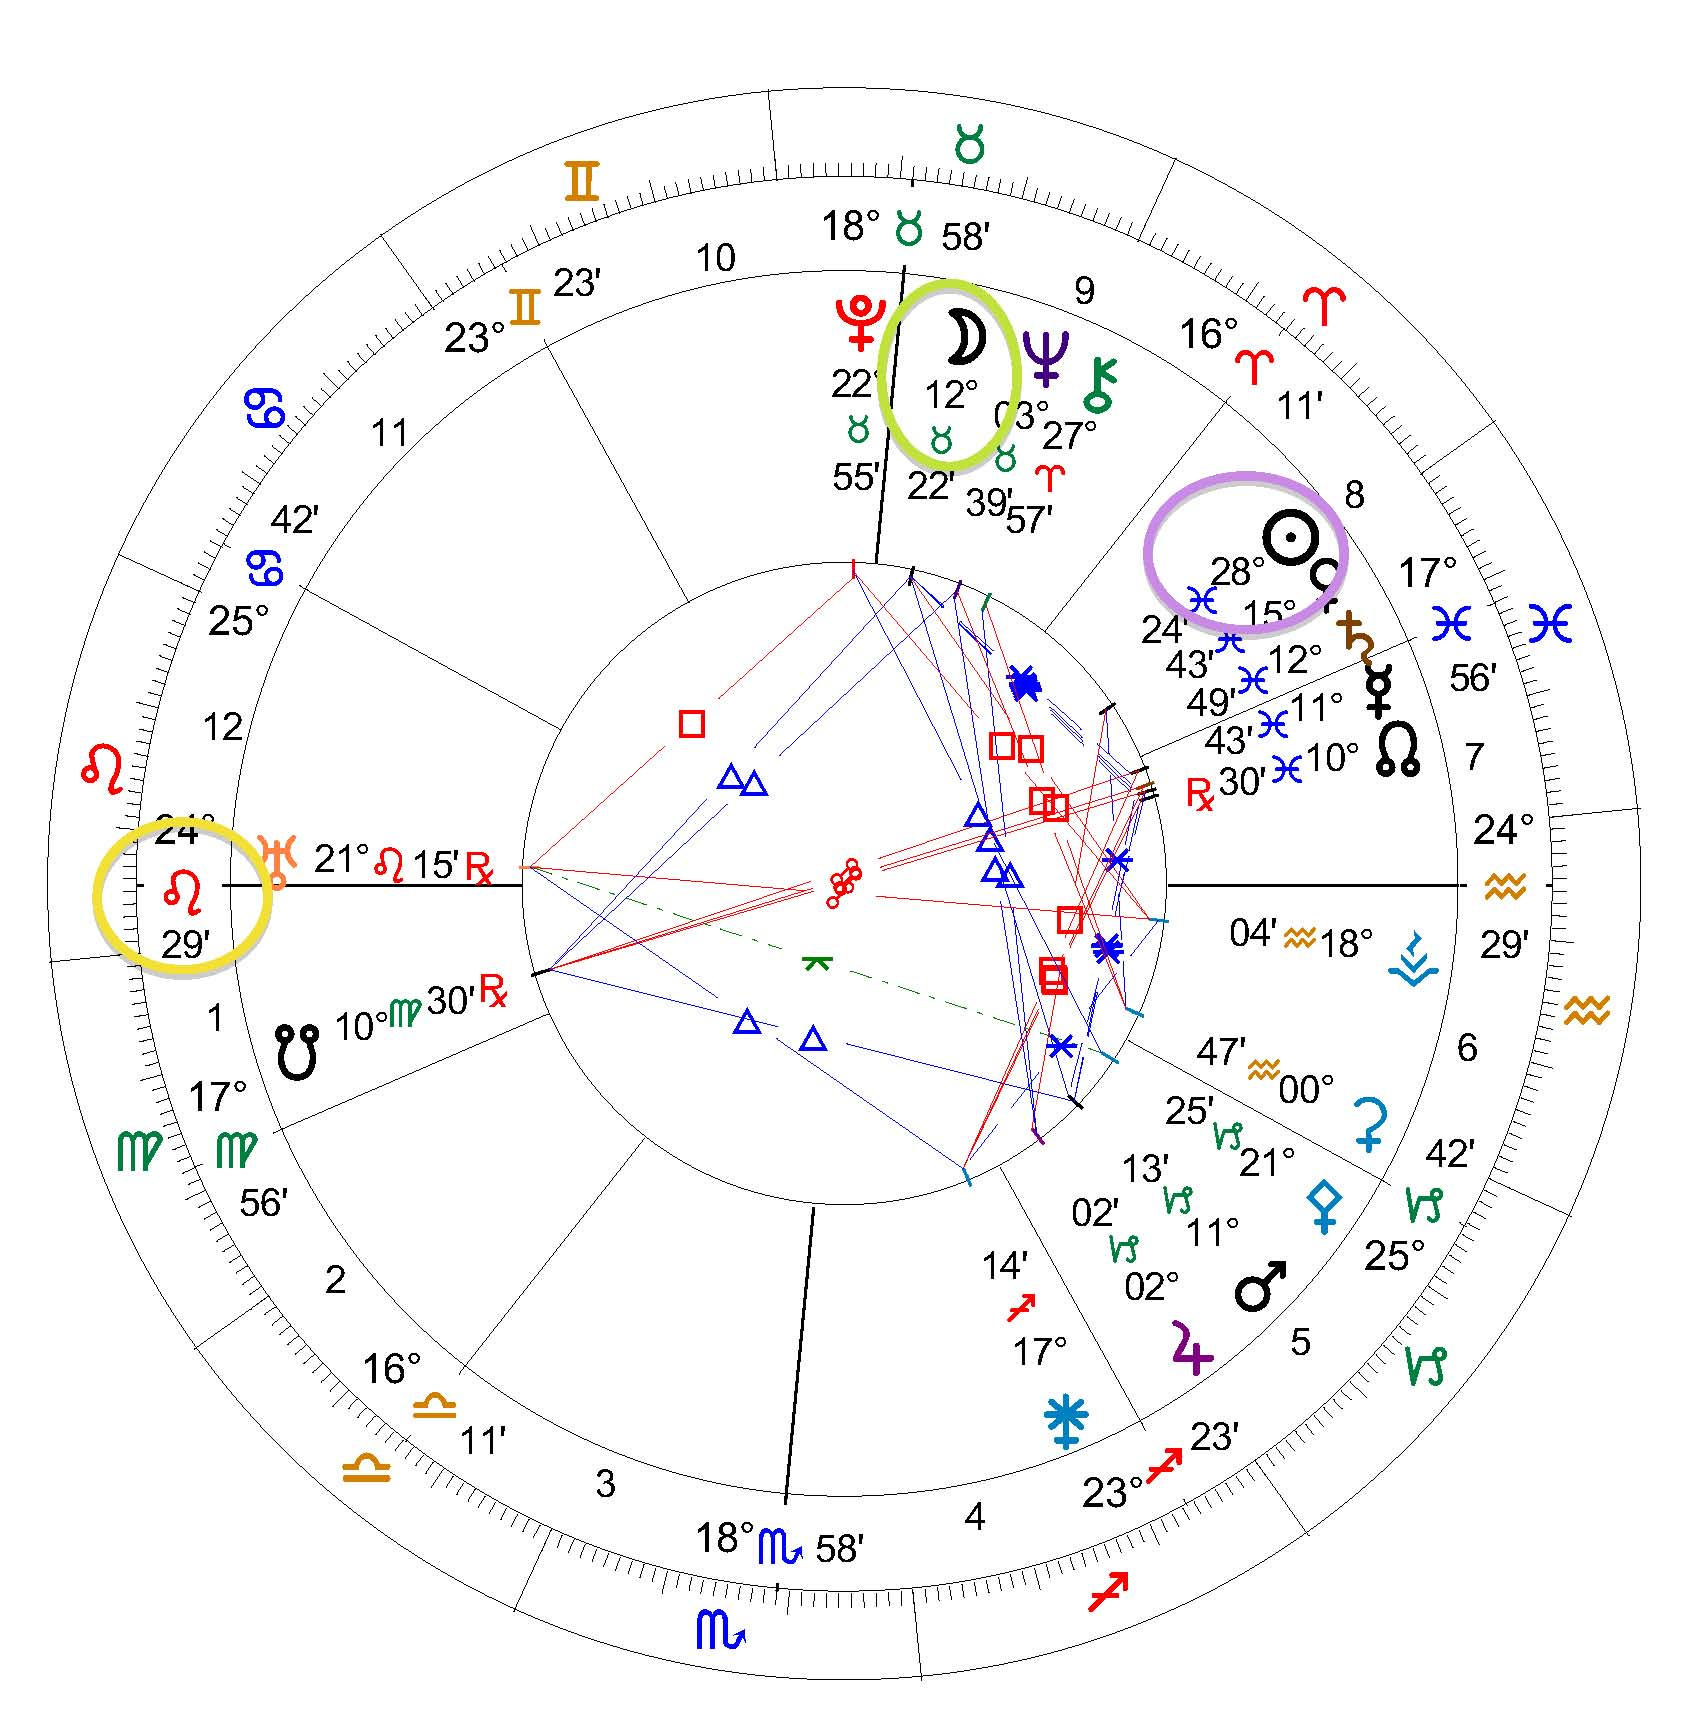 Free birth chart indian astrology choice image free any chart examples miley cyrus natal chart images free any chart examples my natal chart images free any chart nvjuhfo Choice Image